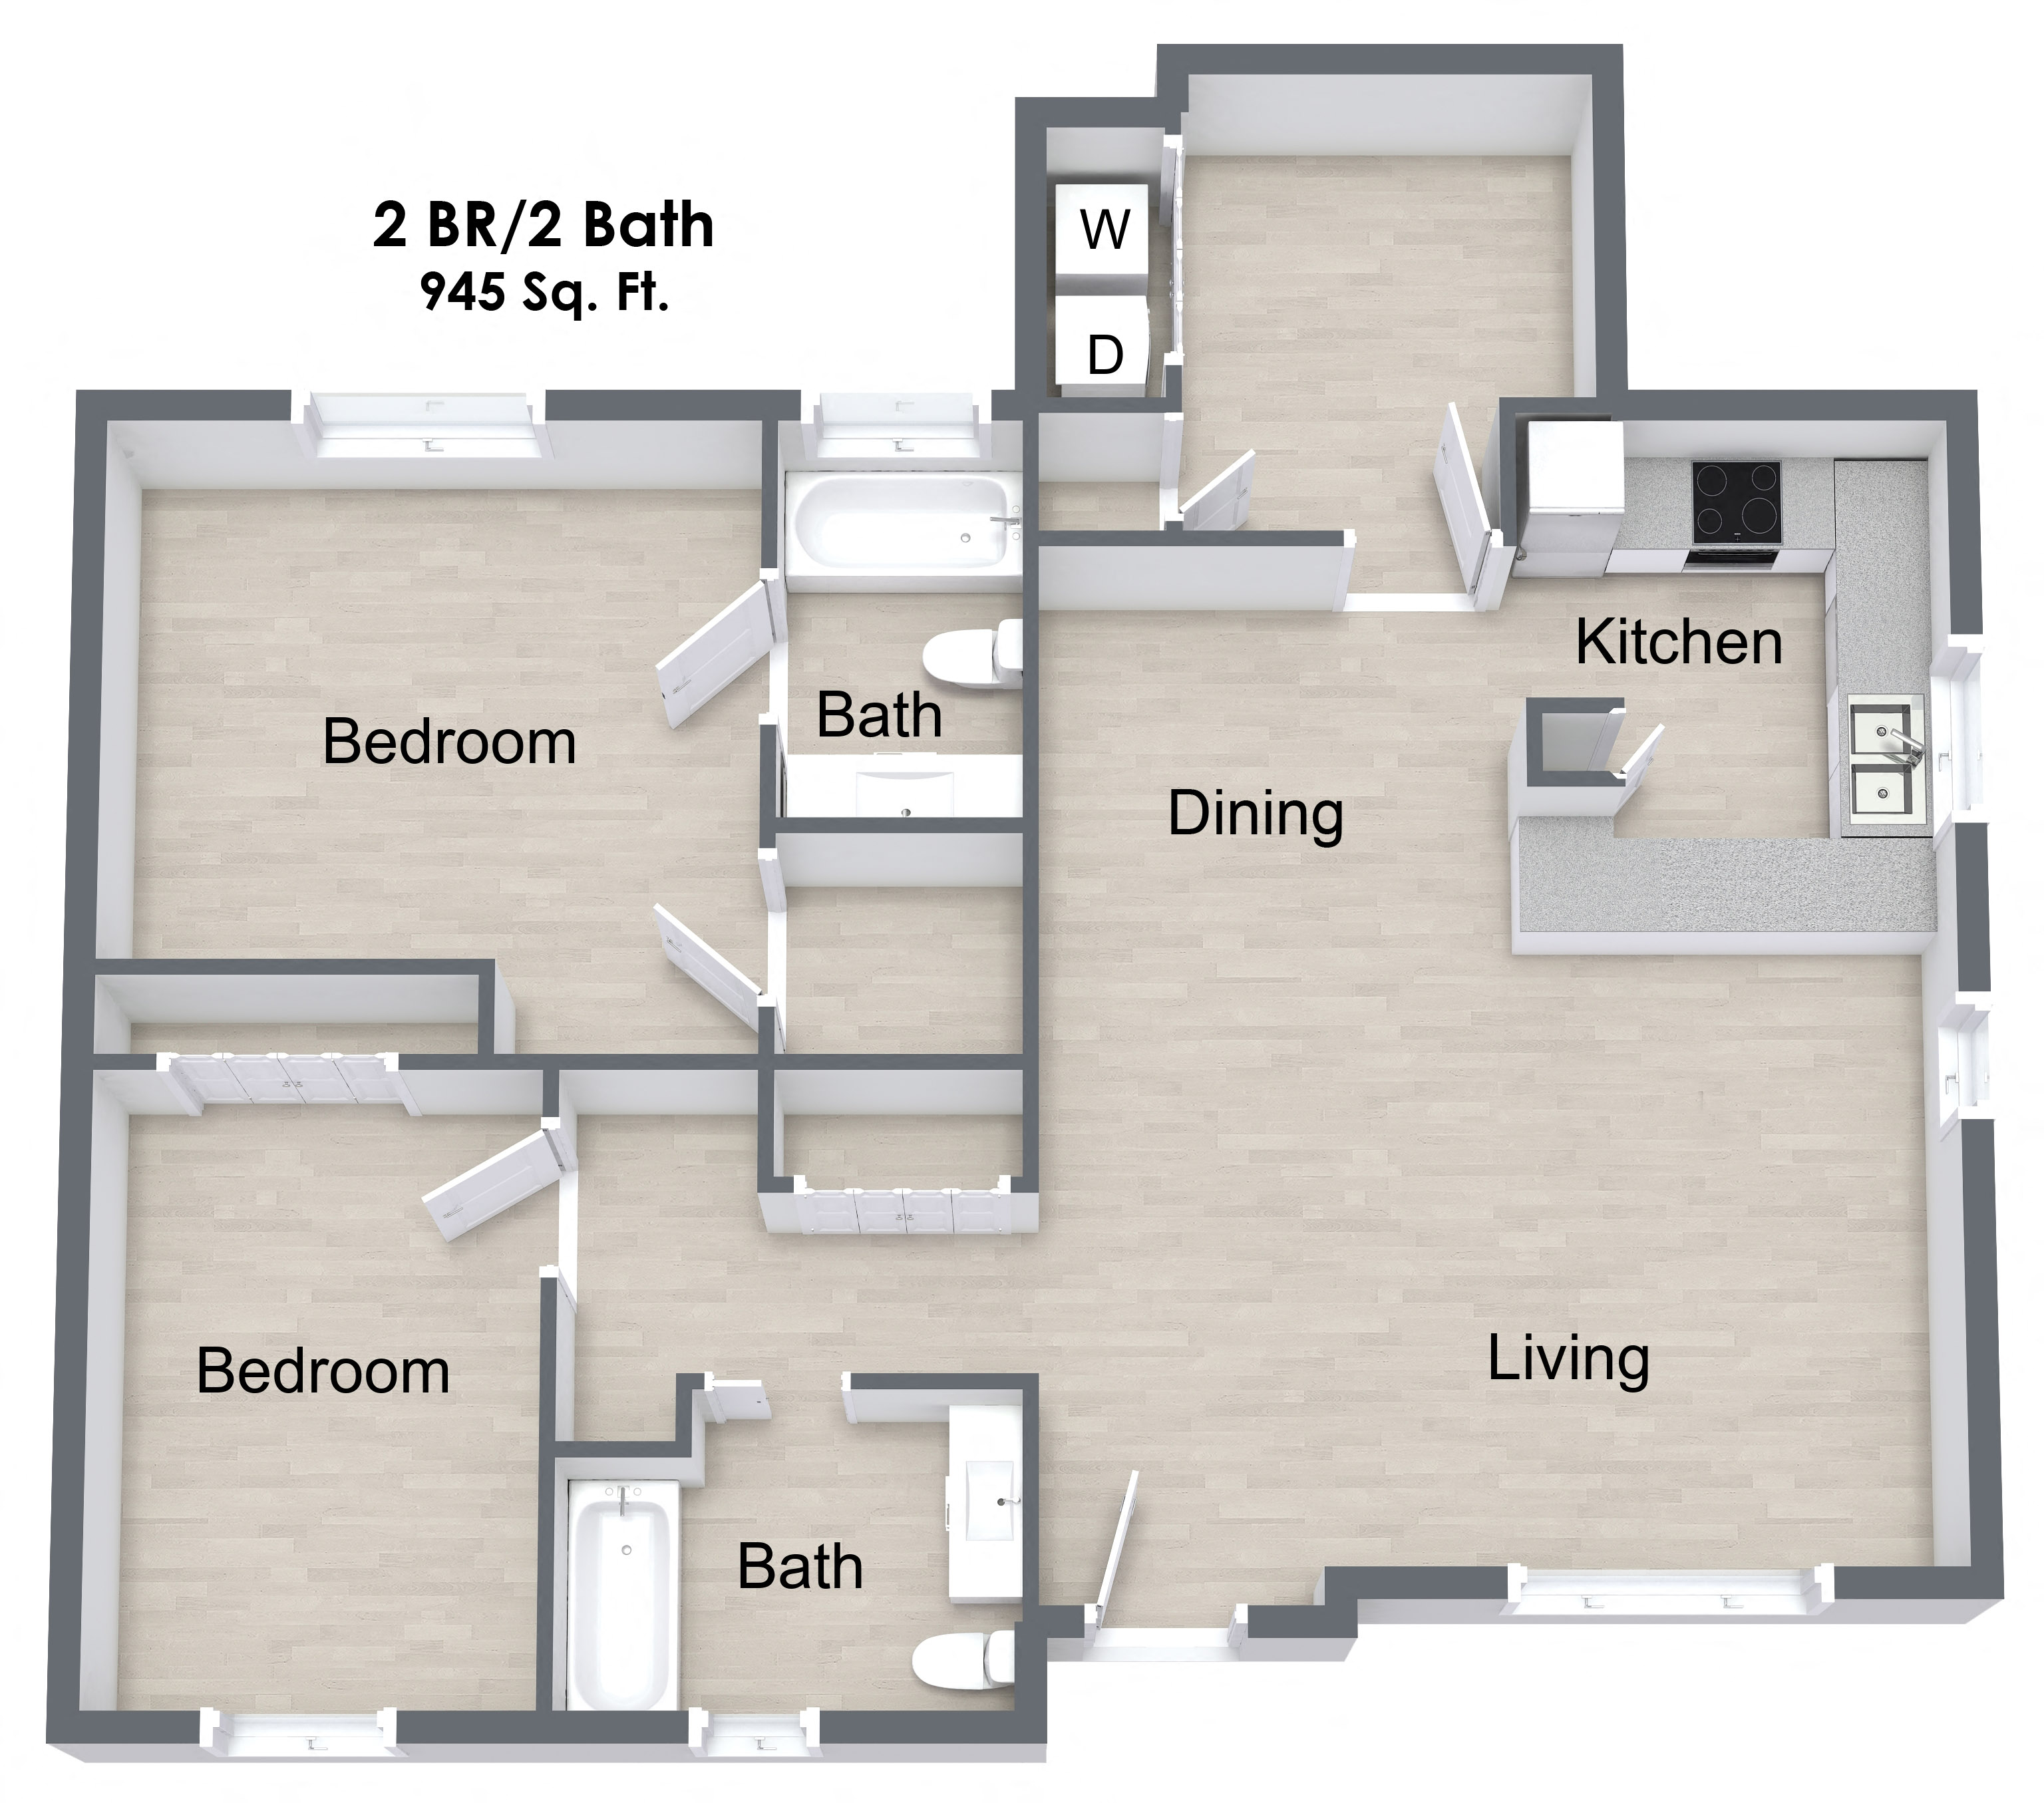 Apartments Beaumont Tx: Floor Plans Of Woodlands Of Beaumont In Beaumont, TX